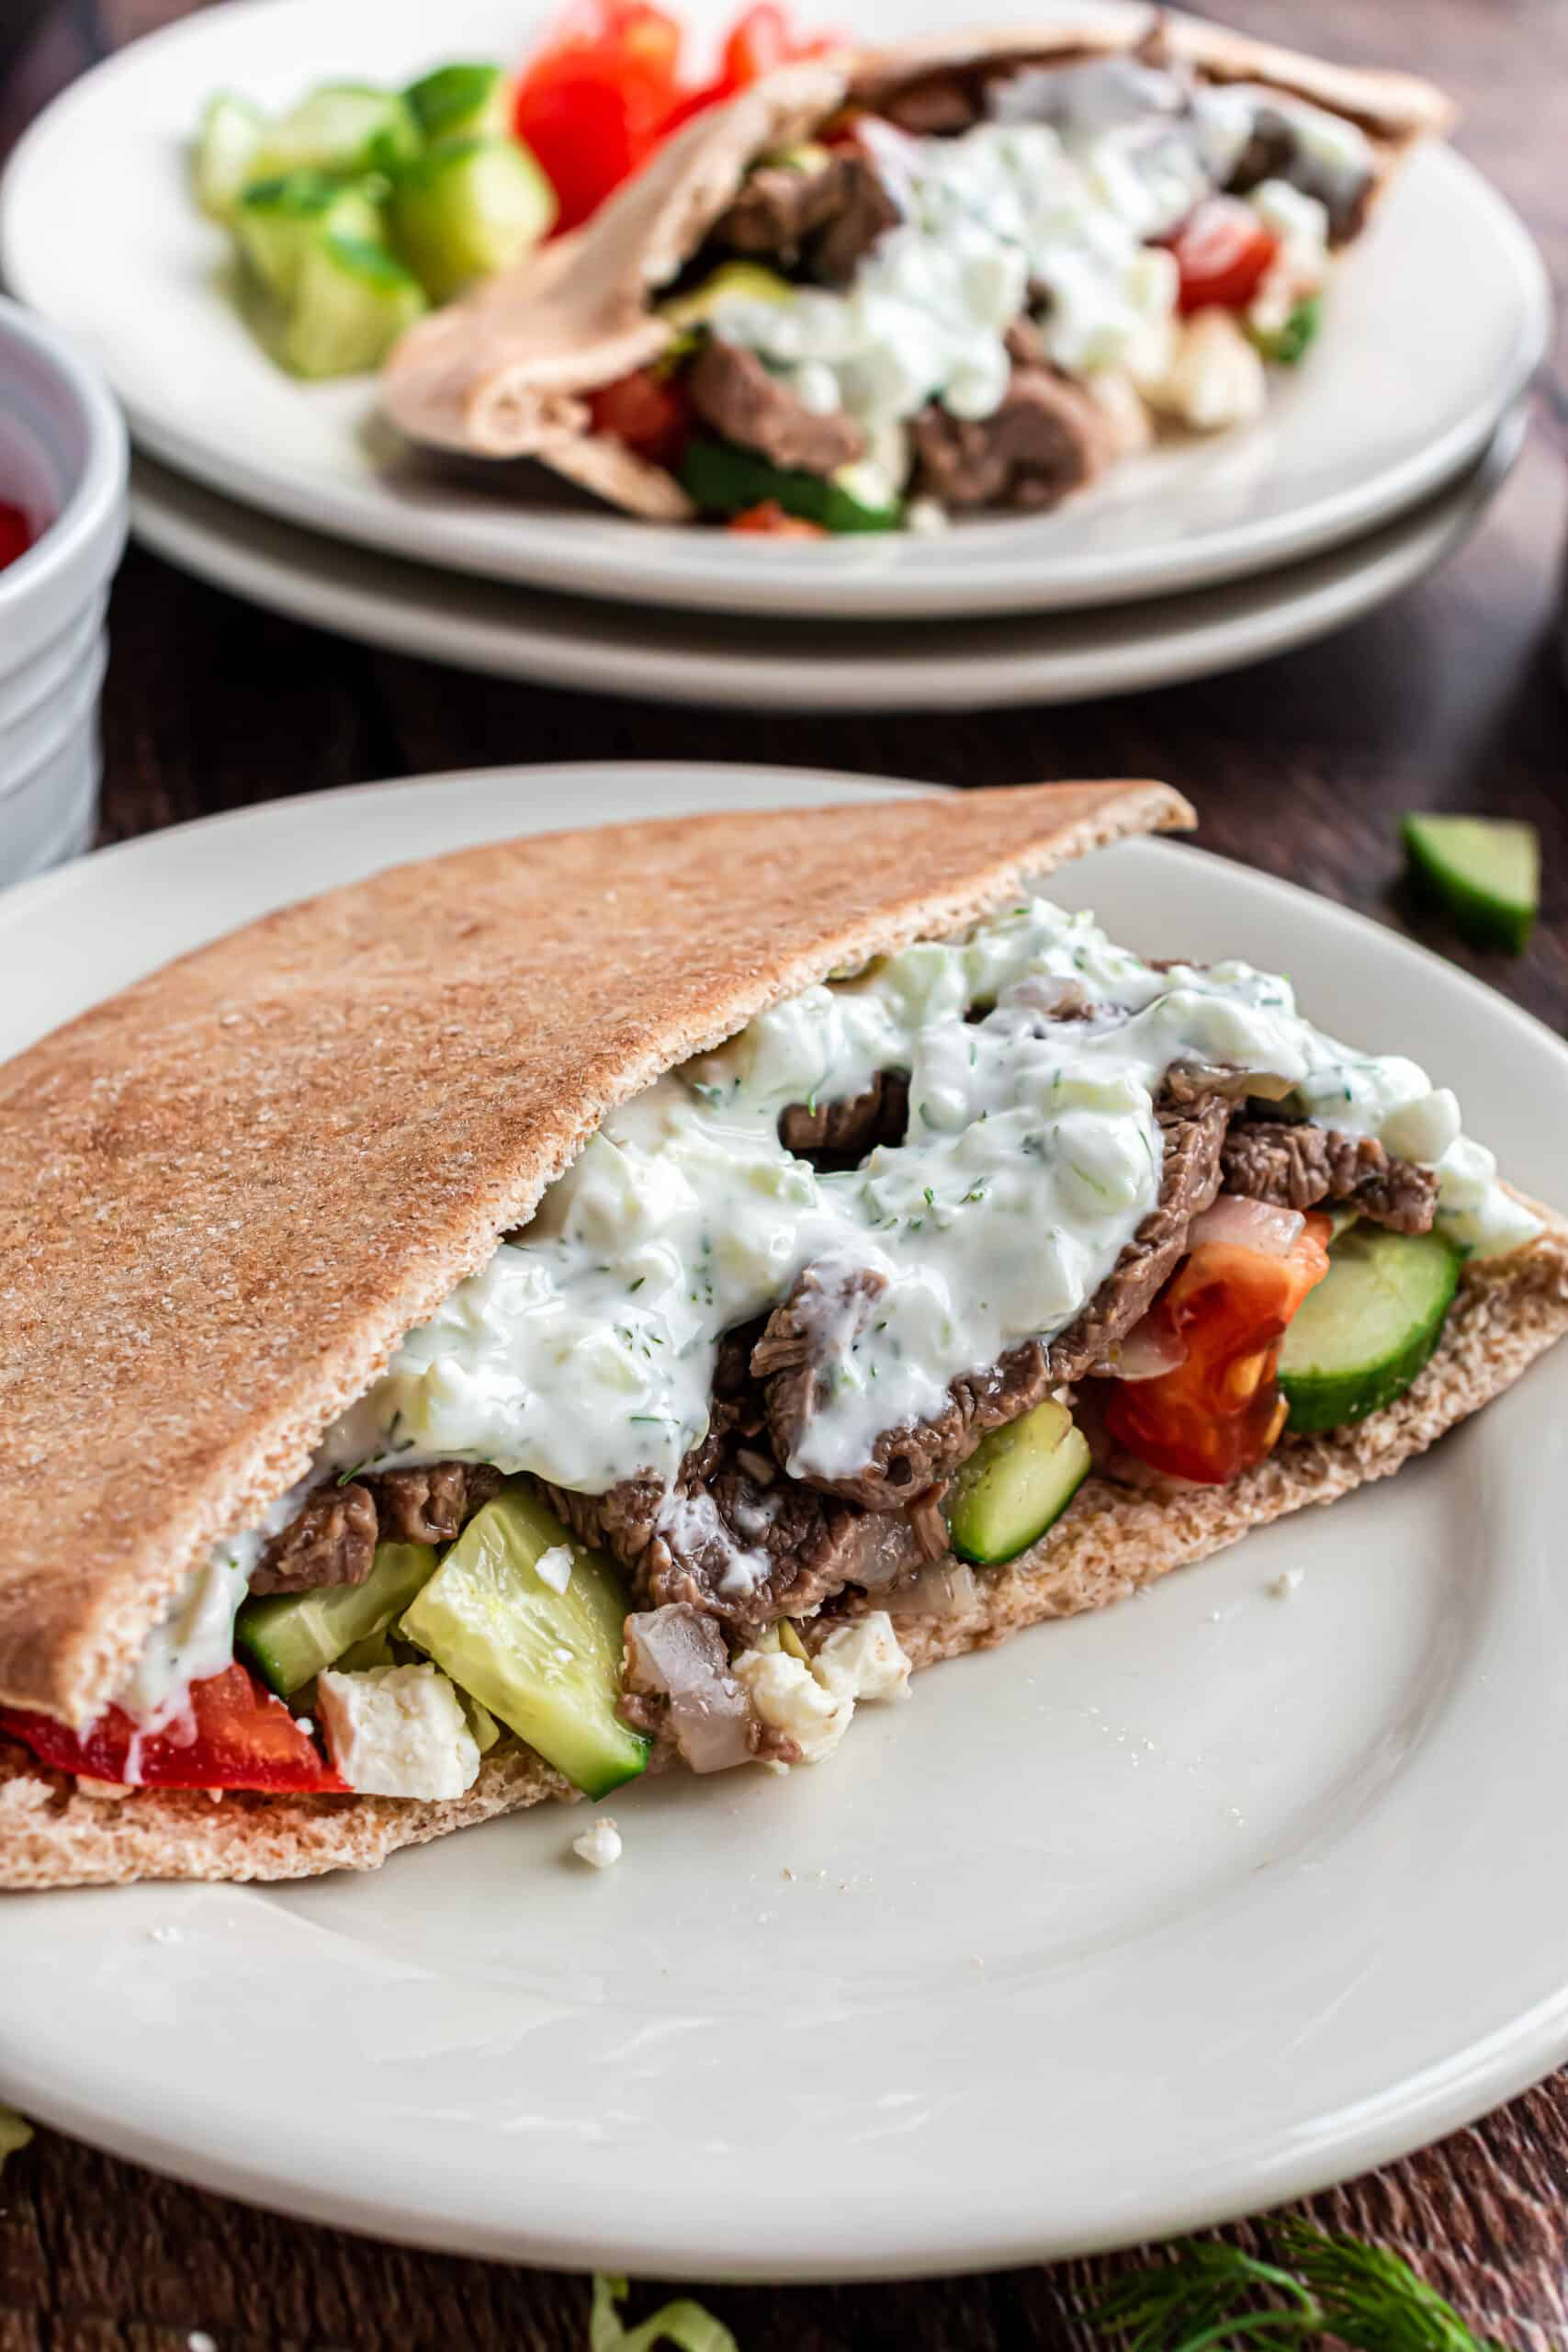 Dinner plate with whole wheat pita, beef gyros, and tzatziki sauce.